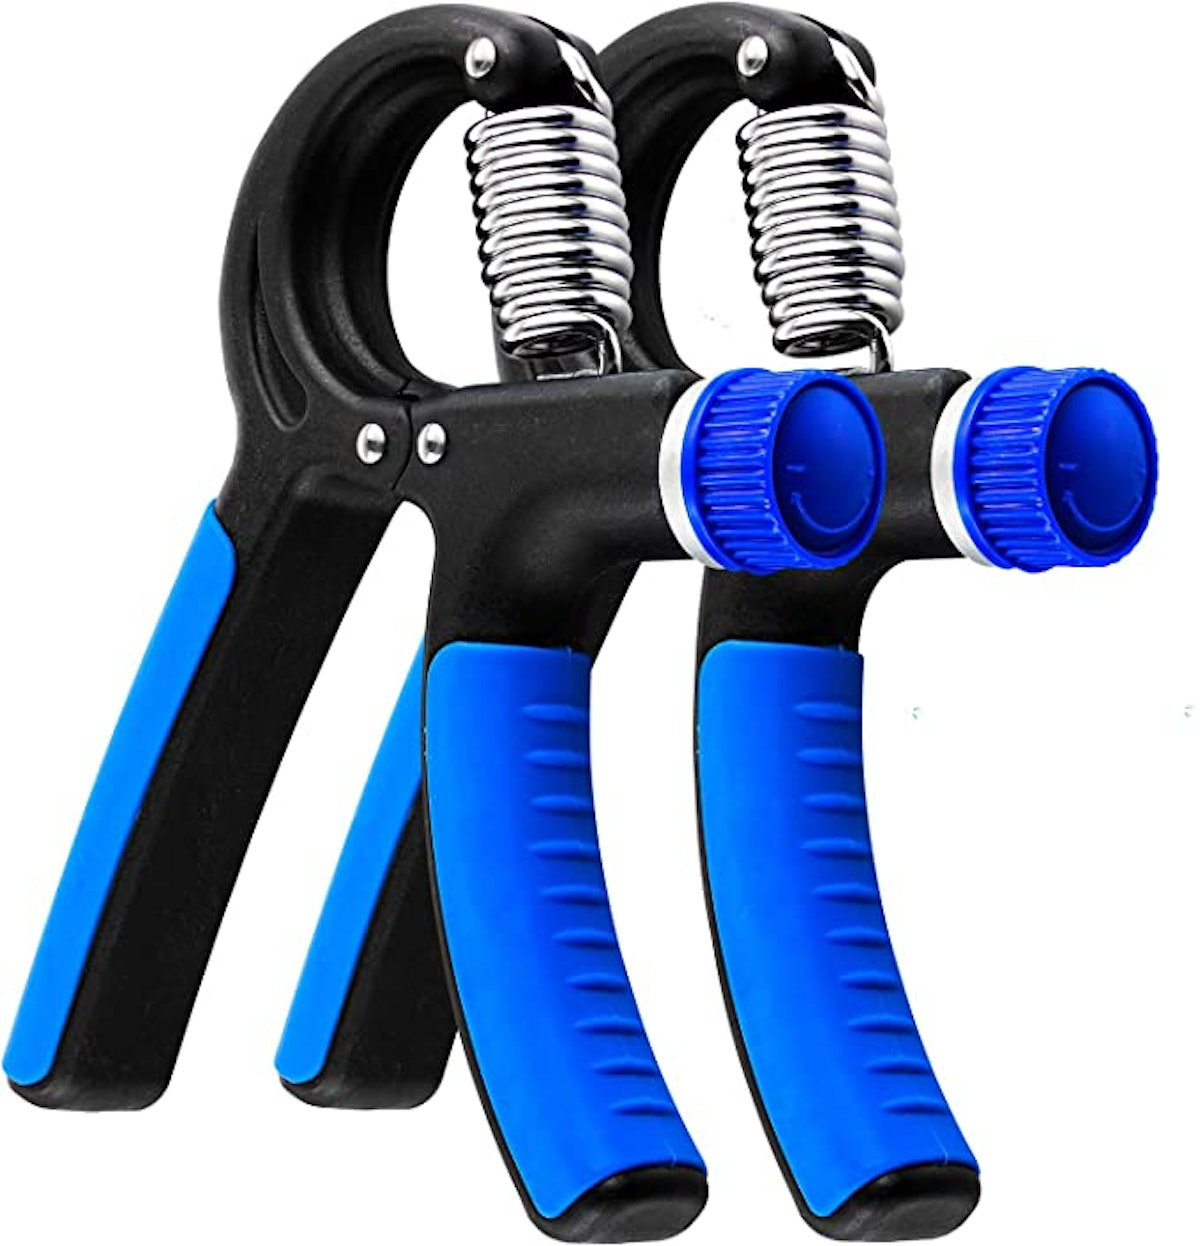 Grip Strength Trainer (2-Pack)